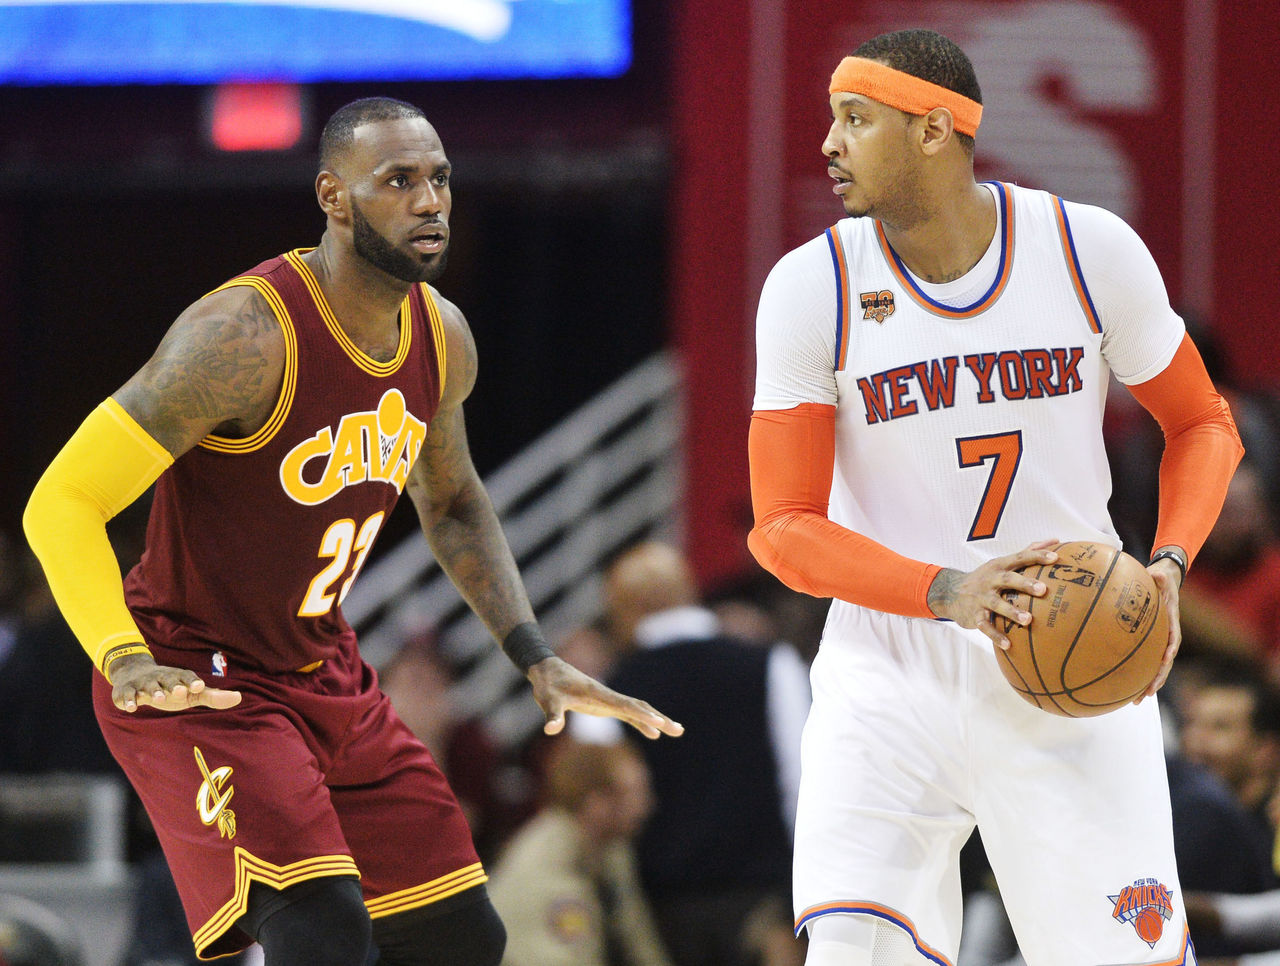 Cropped 2017 02 24t040153z 1883562659 nocid rtrmadp 3 nba new york knicks at cleveland cavaliers